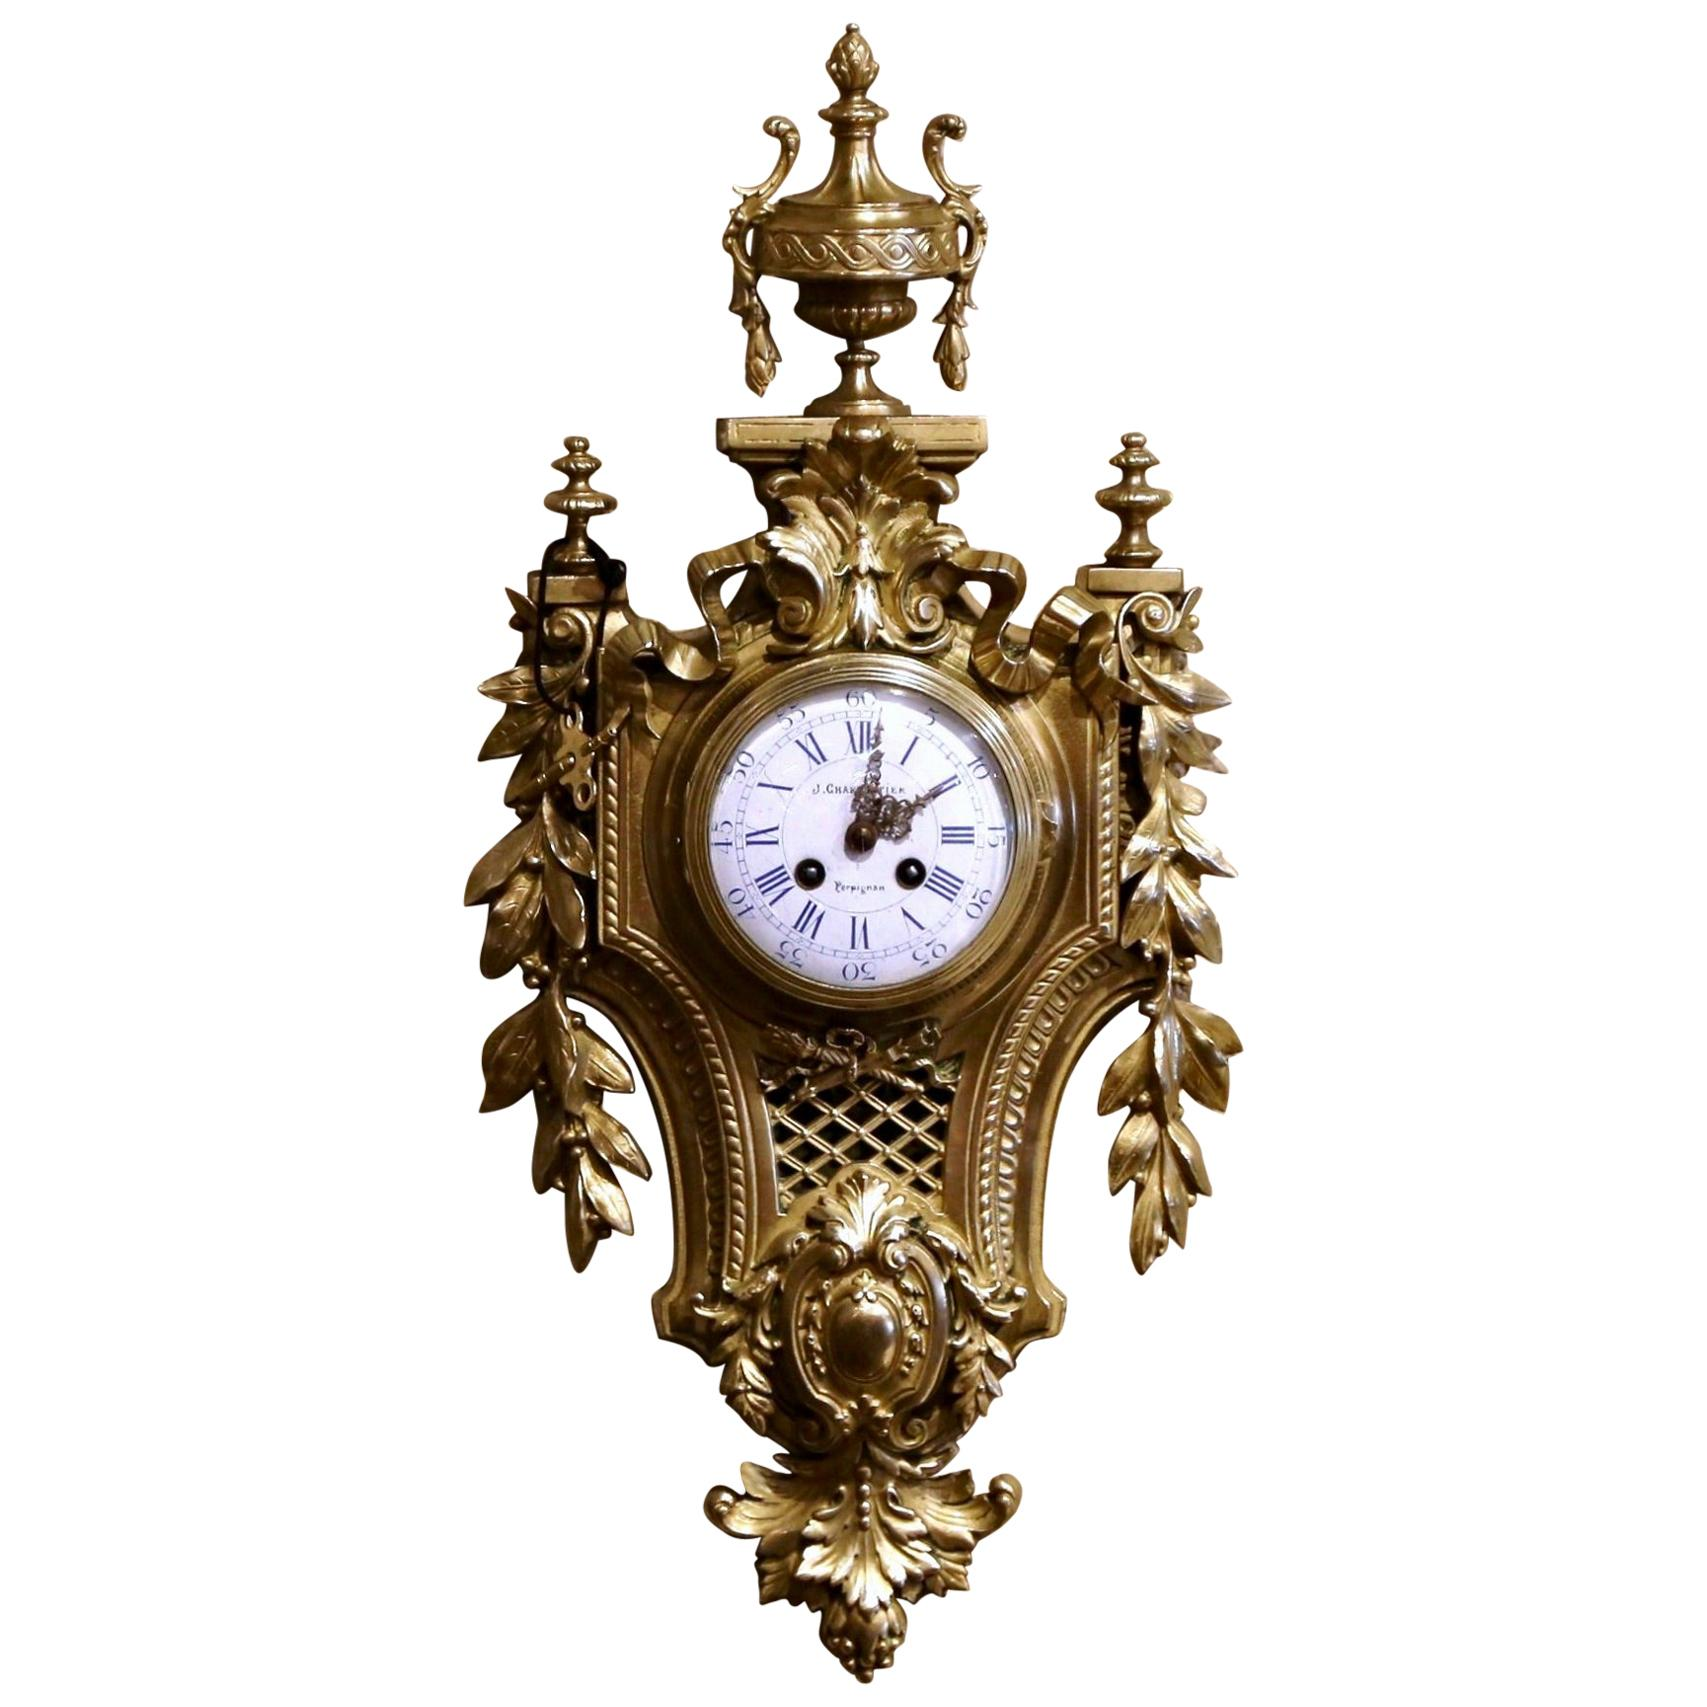 19th Century French Louis XVI Bronze Dore Cartel Wall Clock Signed Charpentier